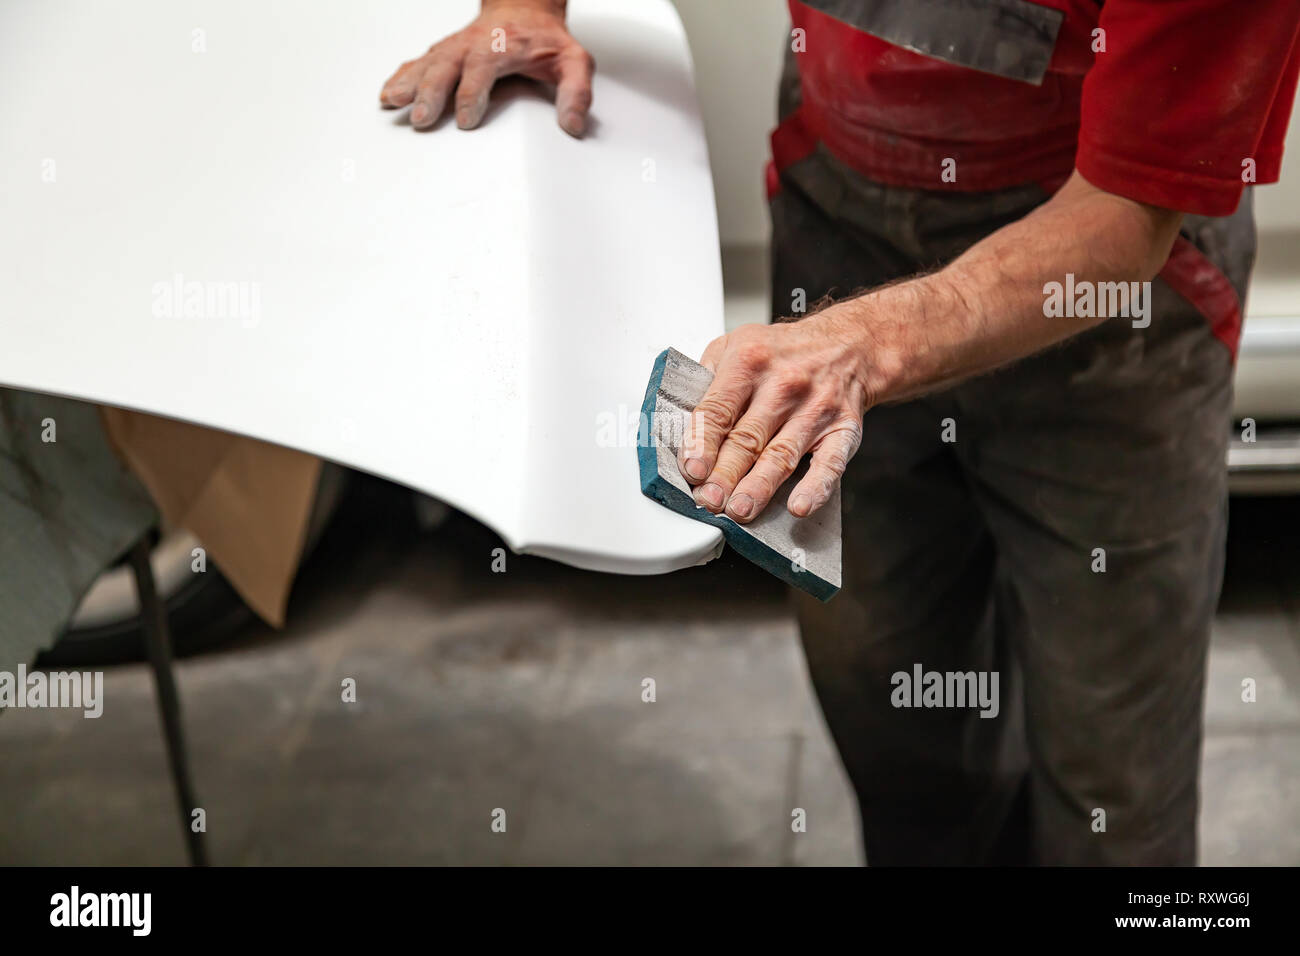 Preparation for painting a car element using emery sponge by a service technician leveling out before applying a primer after damage to a part of the  - Stock Image